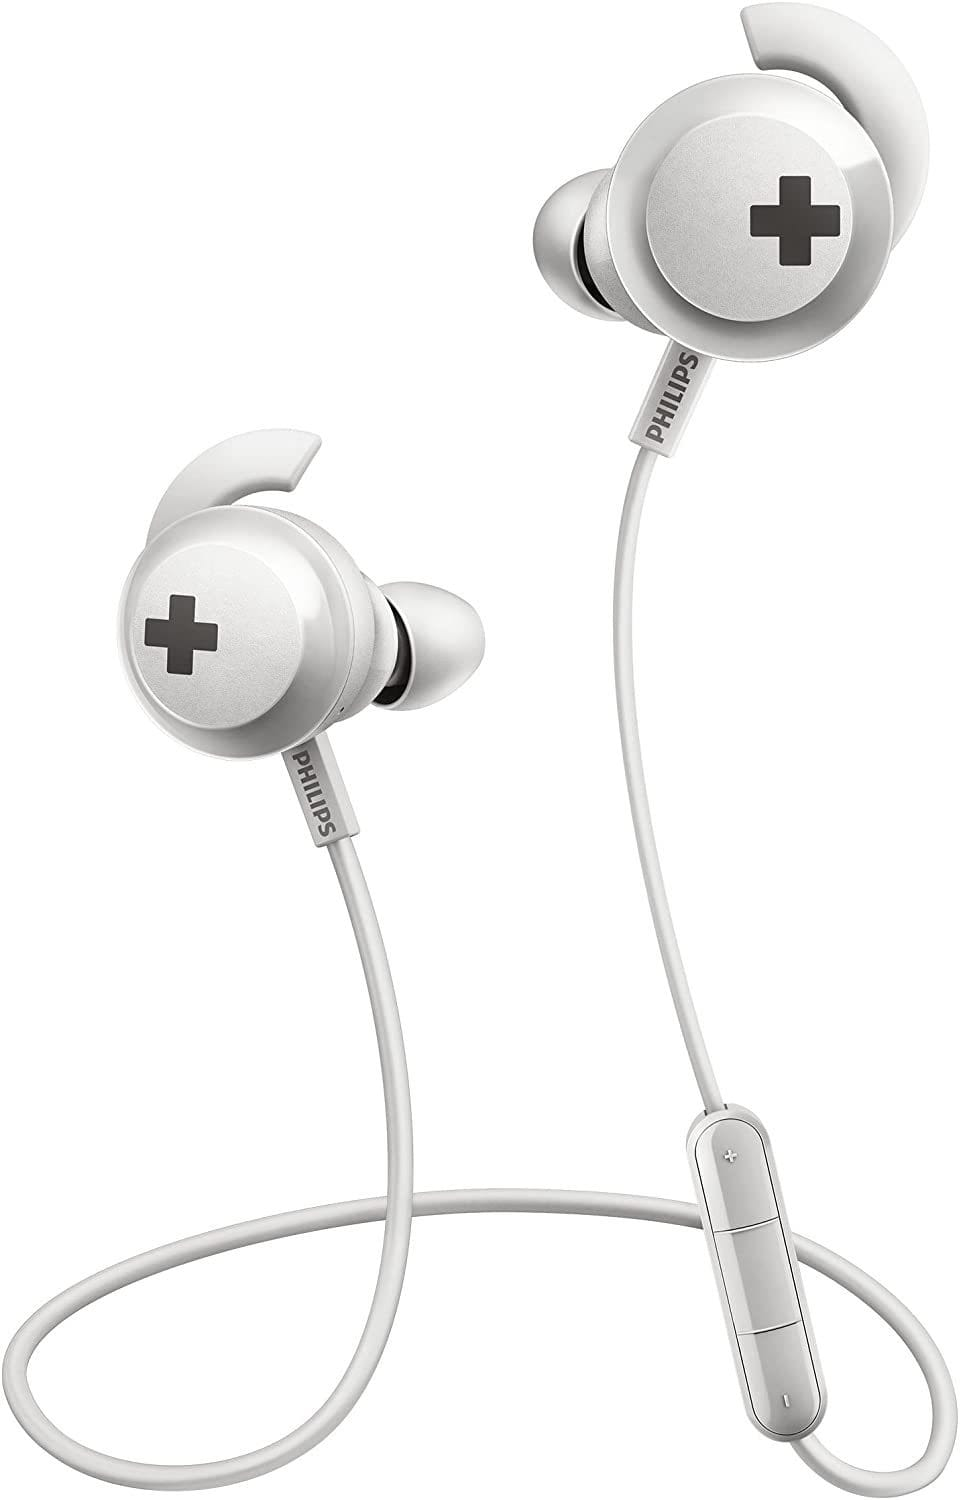 Philips SHB4305WT/00 Bass+ Bluetooth Earphones with Mic - White [Accessories]